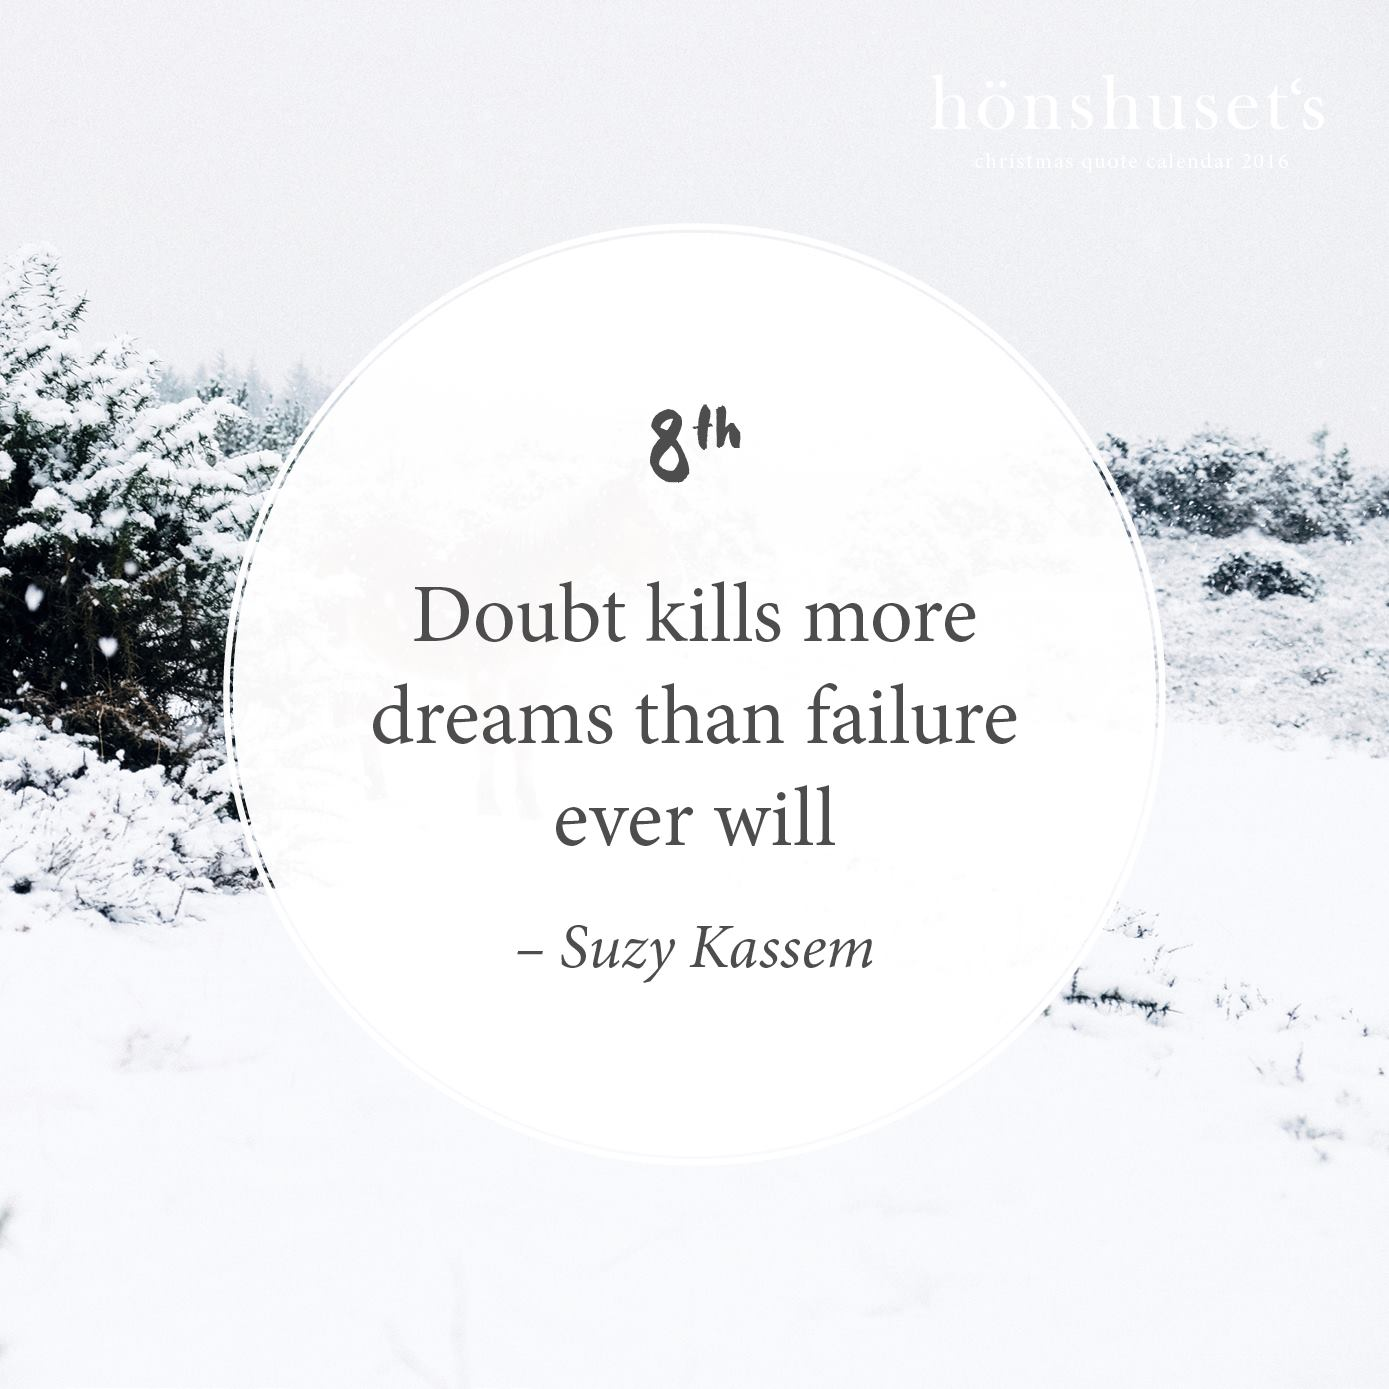 Doubt kills more dreams than failure ever will  – Suzy Kassem